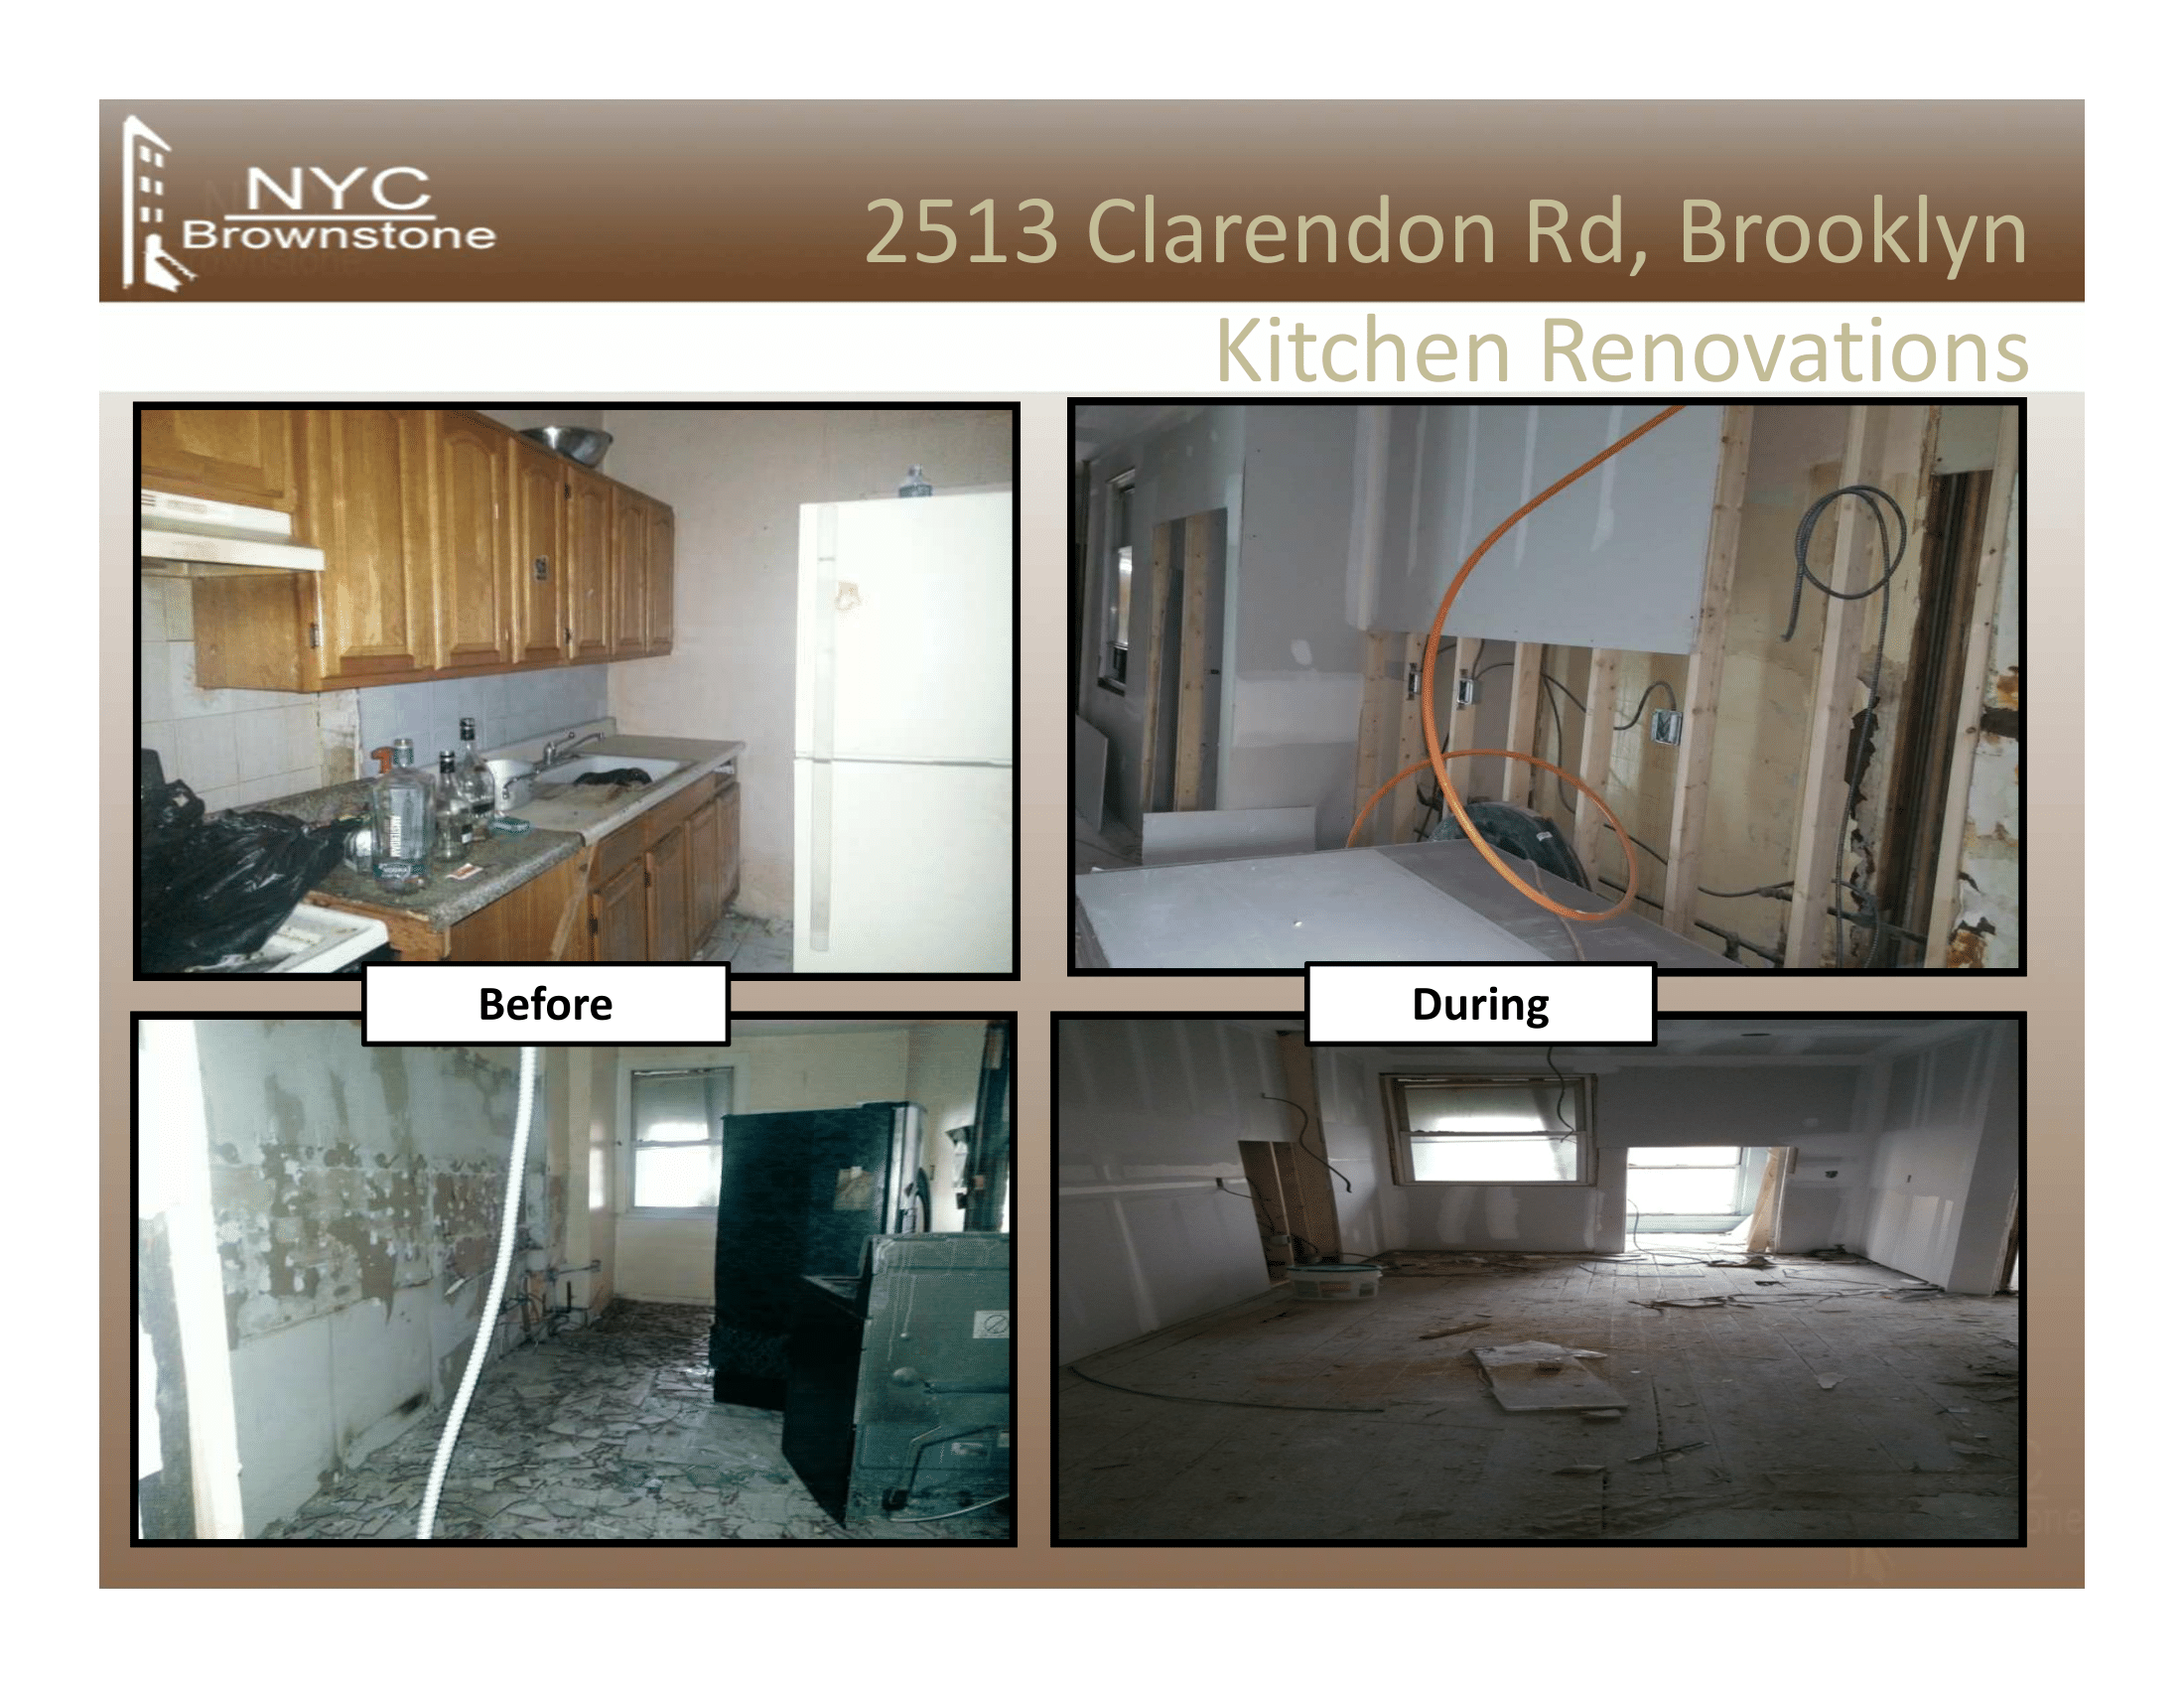 Brownstone Clarendon Renovation-05.png